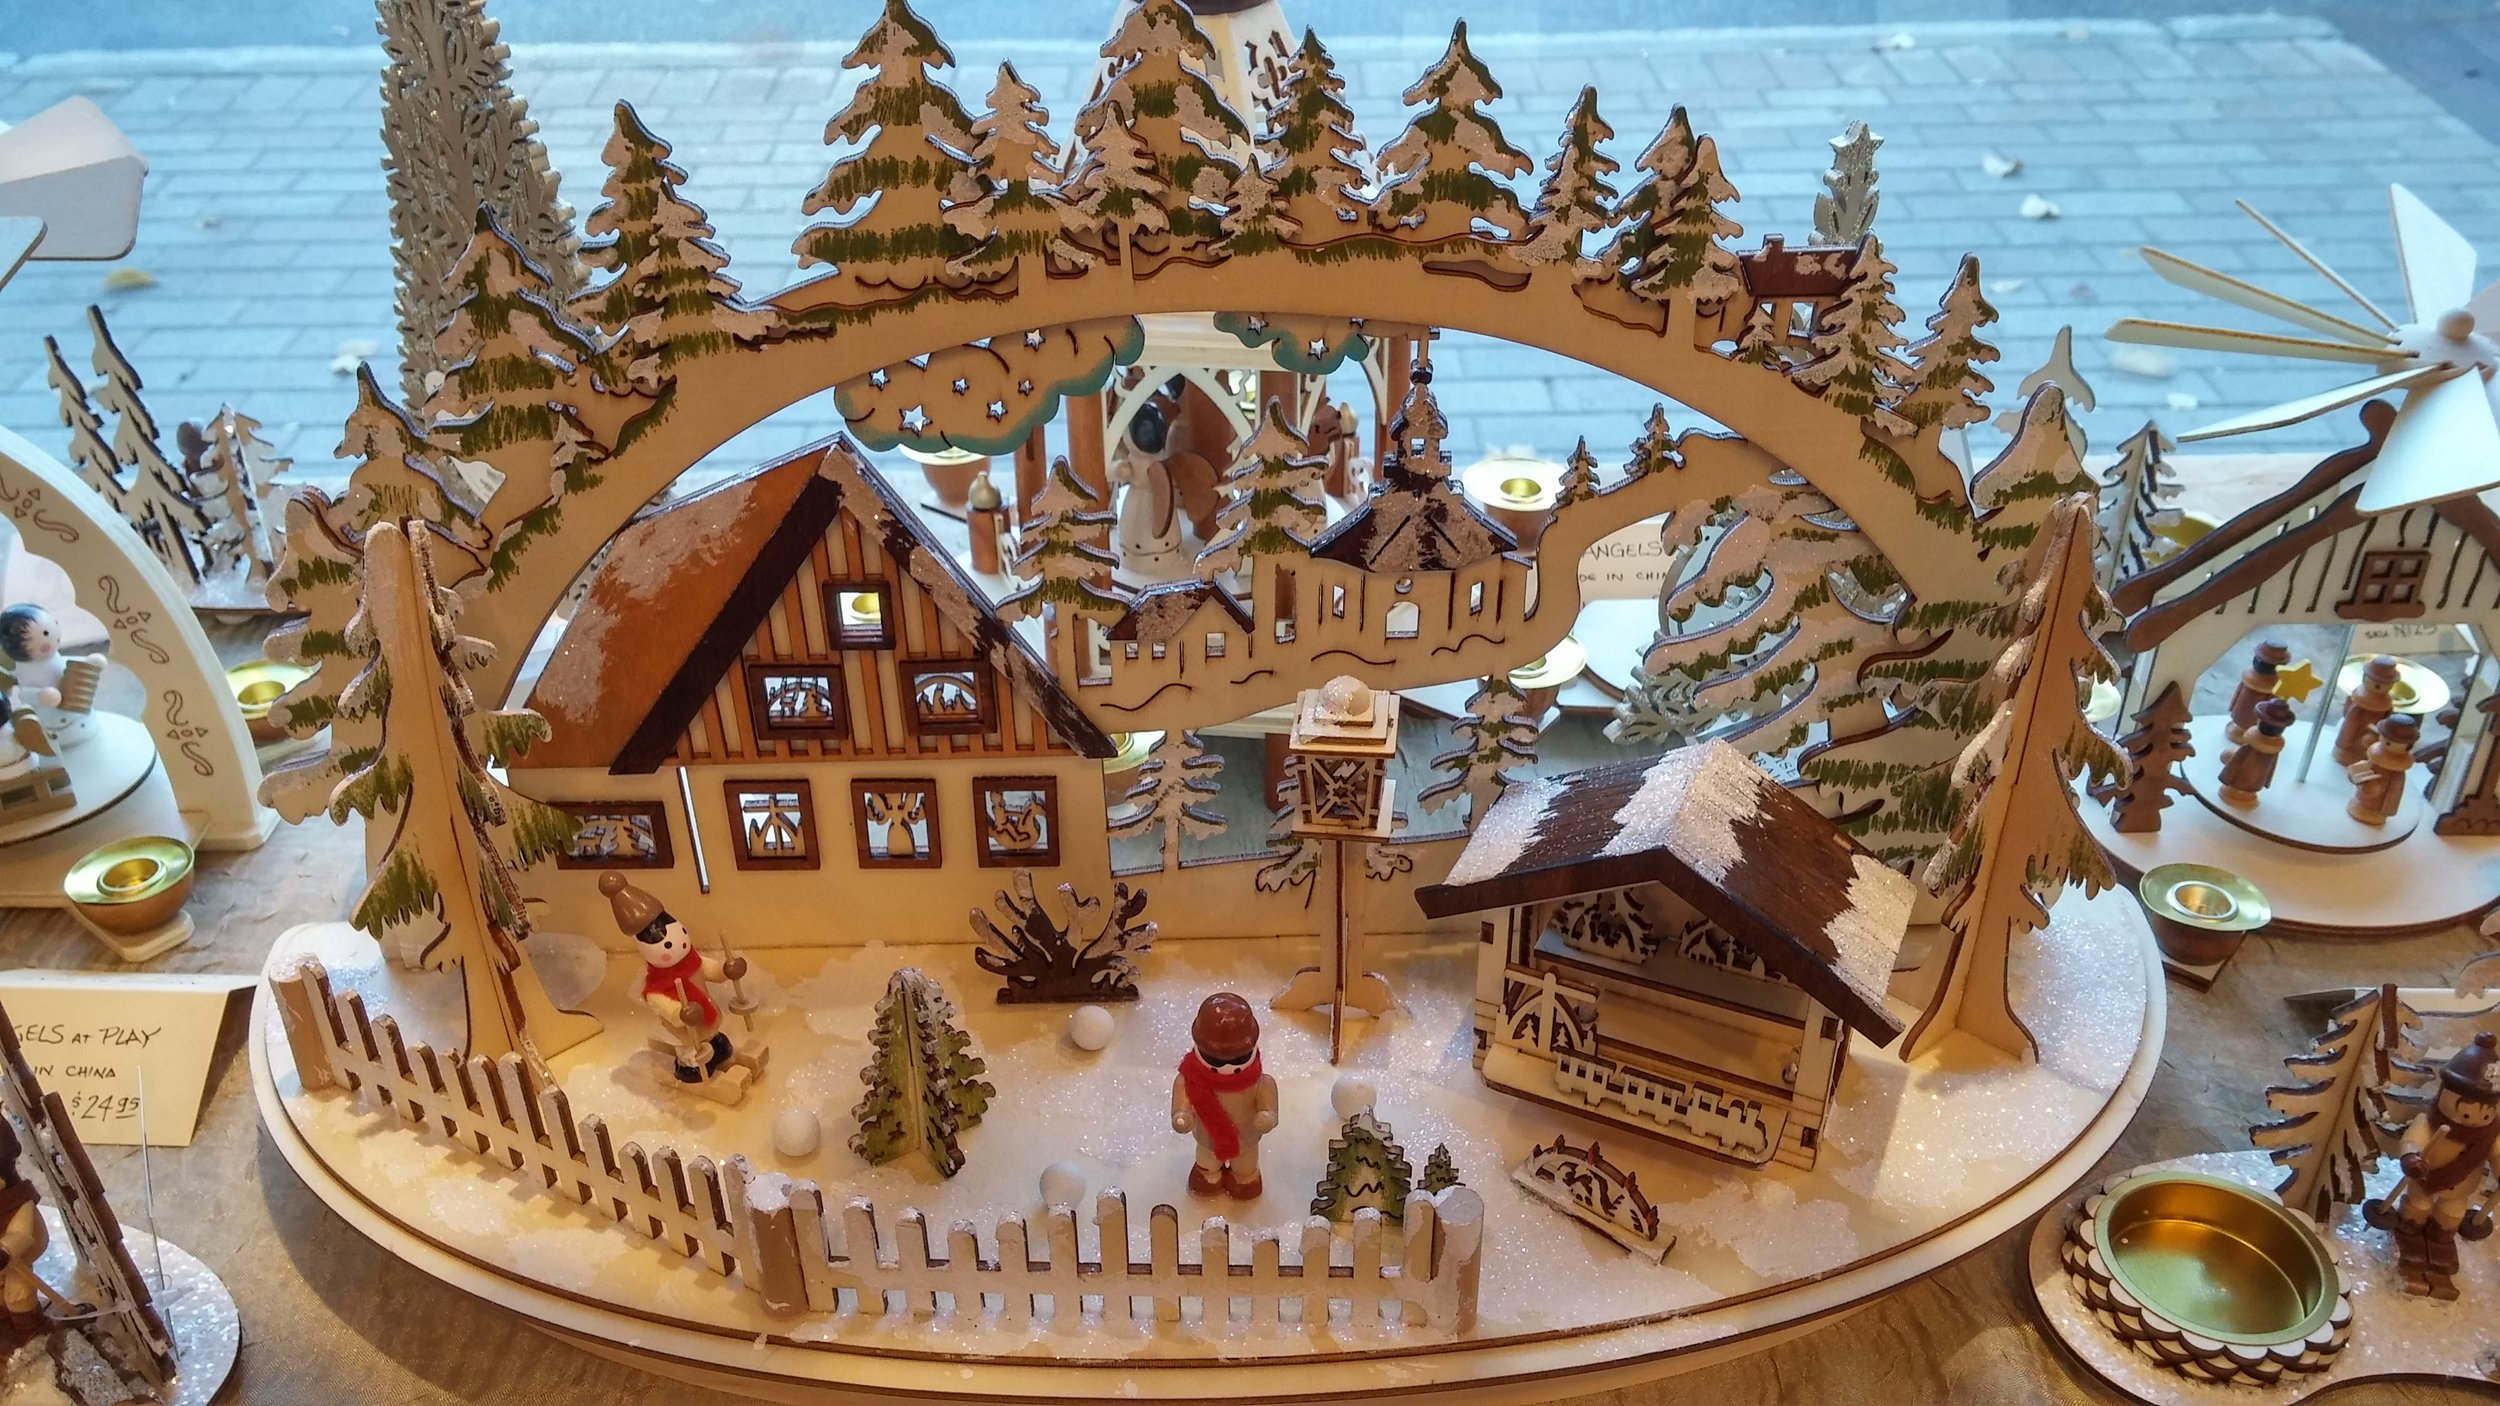 A glittery wonderland in miniature is depicted in this detailed wooden scene. The house, with the church in the distance, the trees rising up on the hillside beyond, the tiny skier and scarf wrapped gent behind a white picket fence... this magical vignette is perfect for your console or mantle.  November 9, 2017